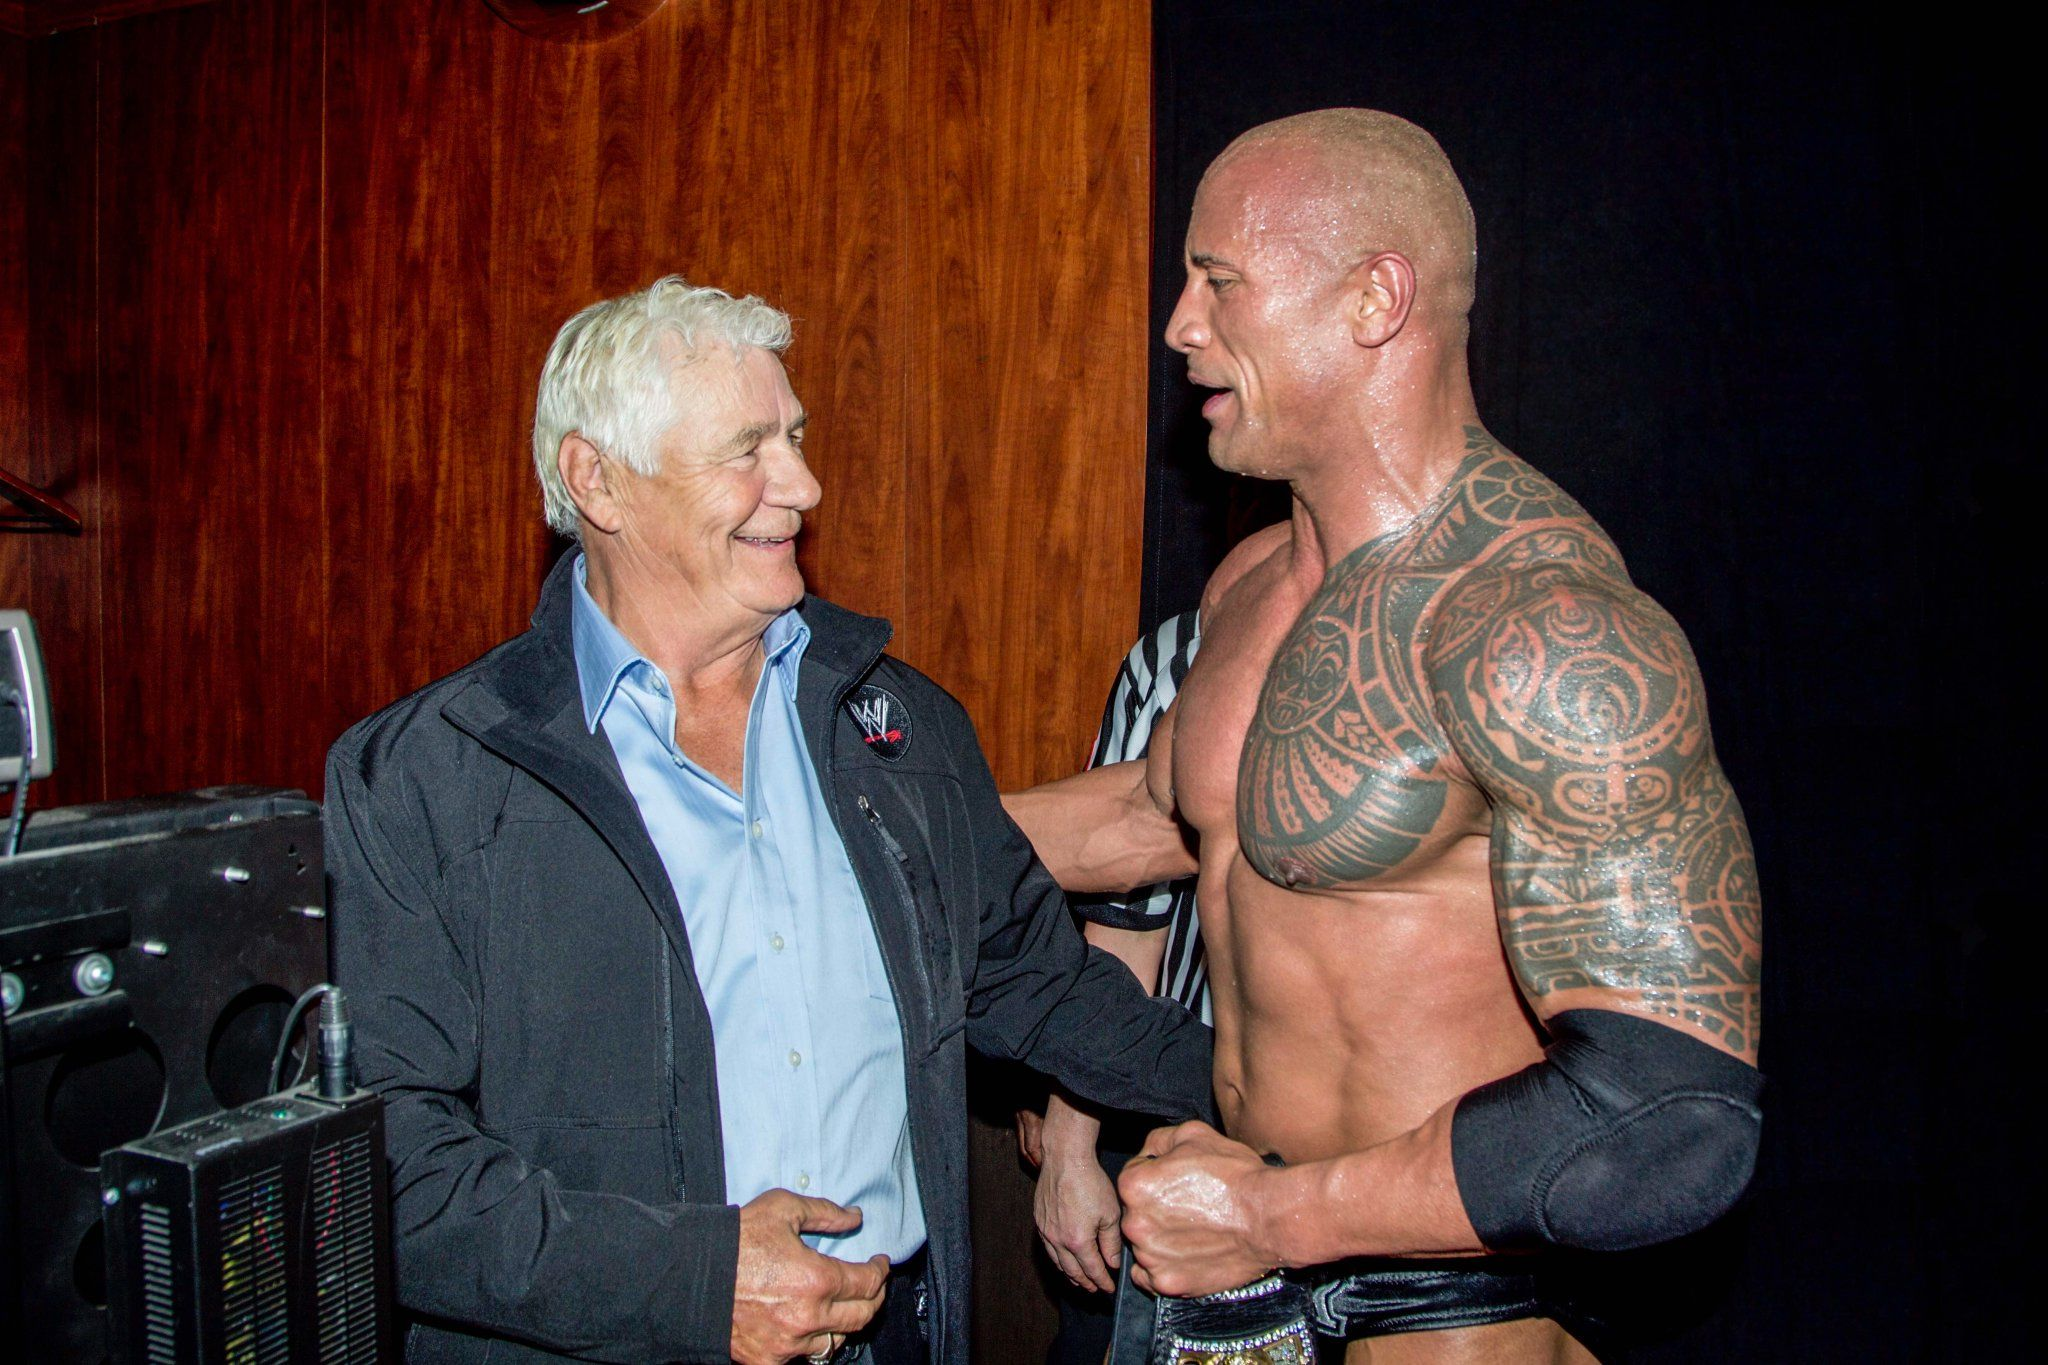 Pat Patterson and The Rock